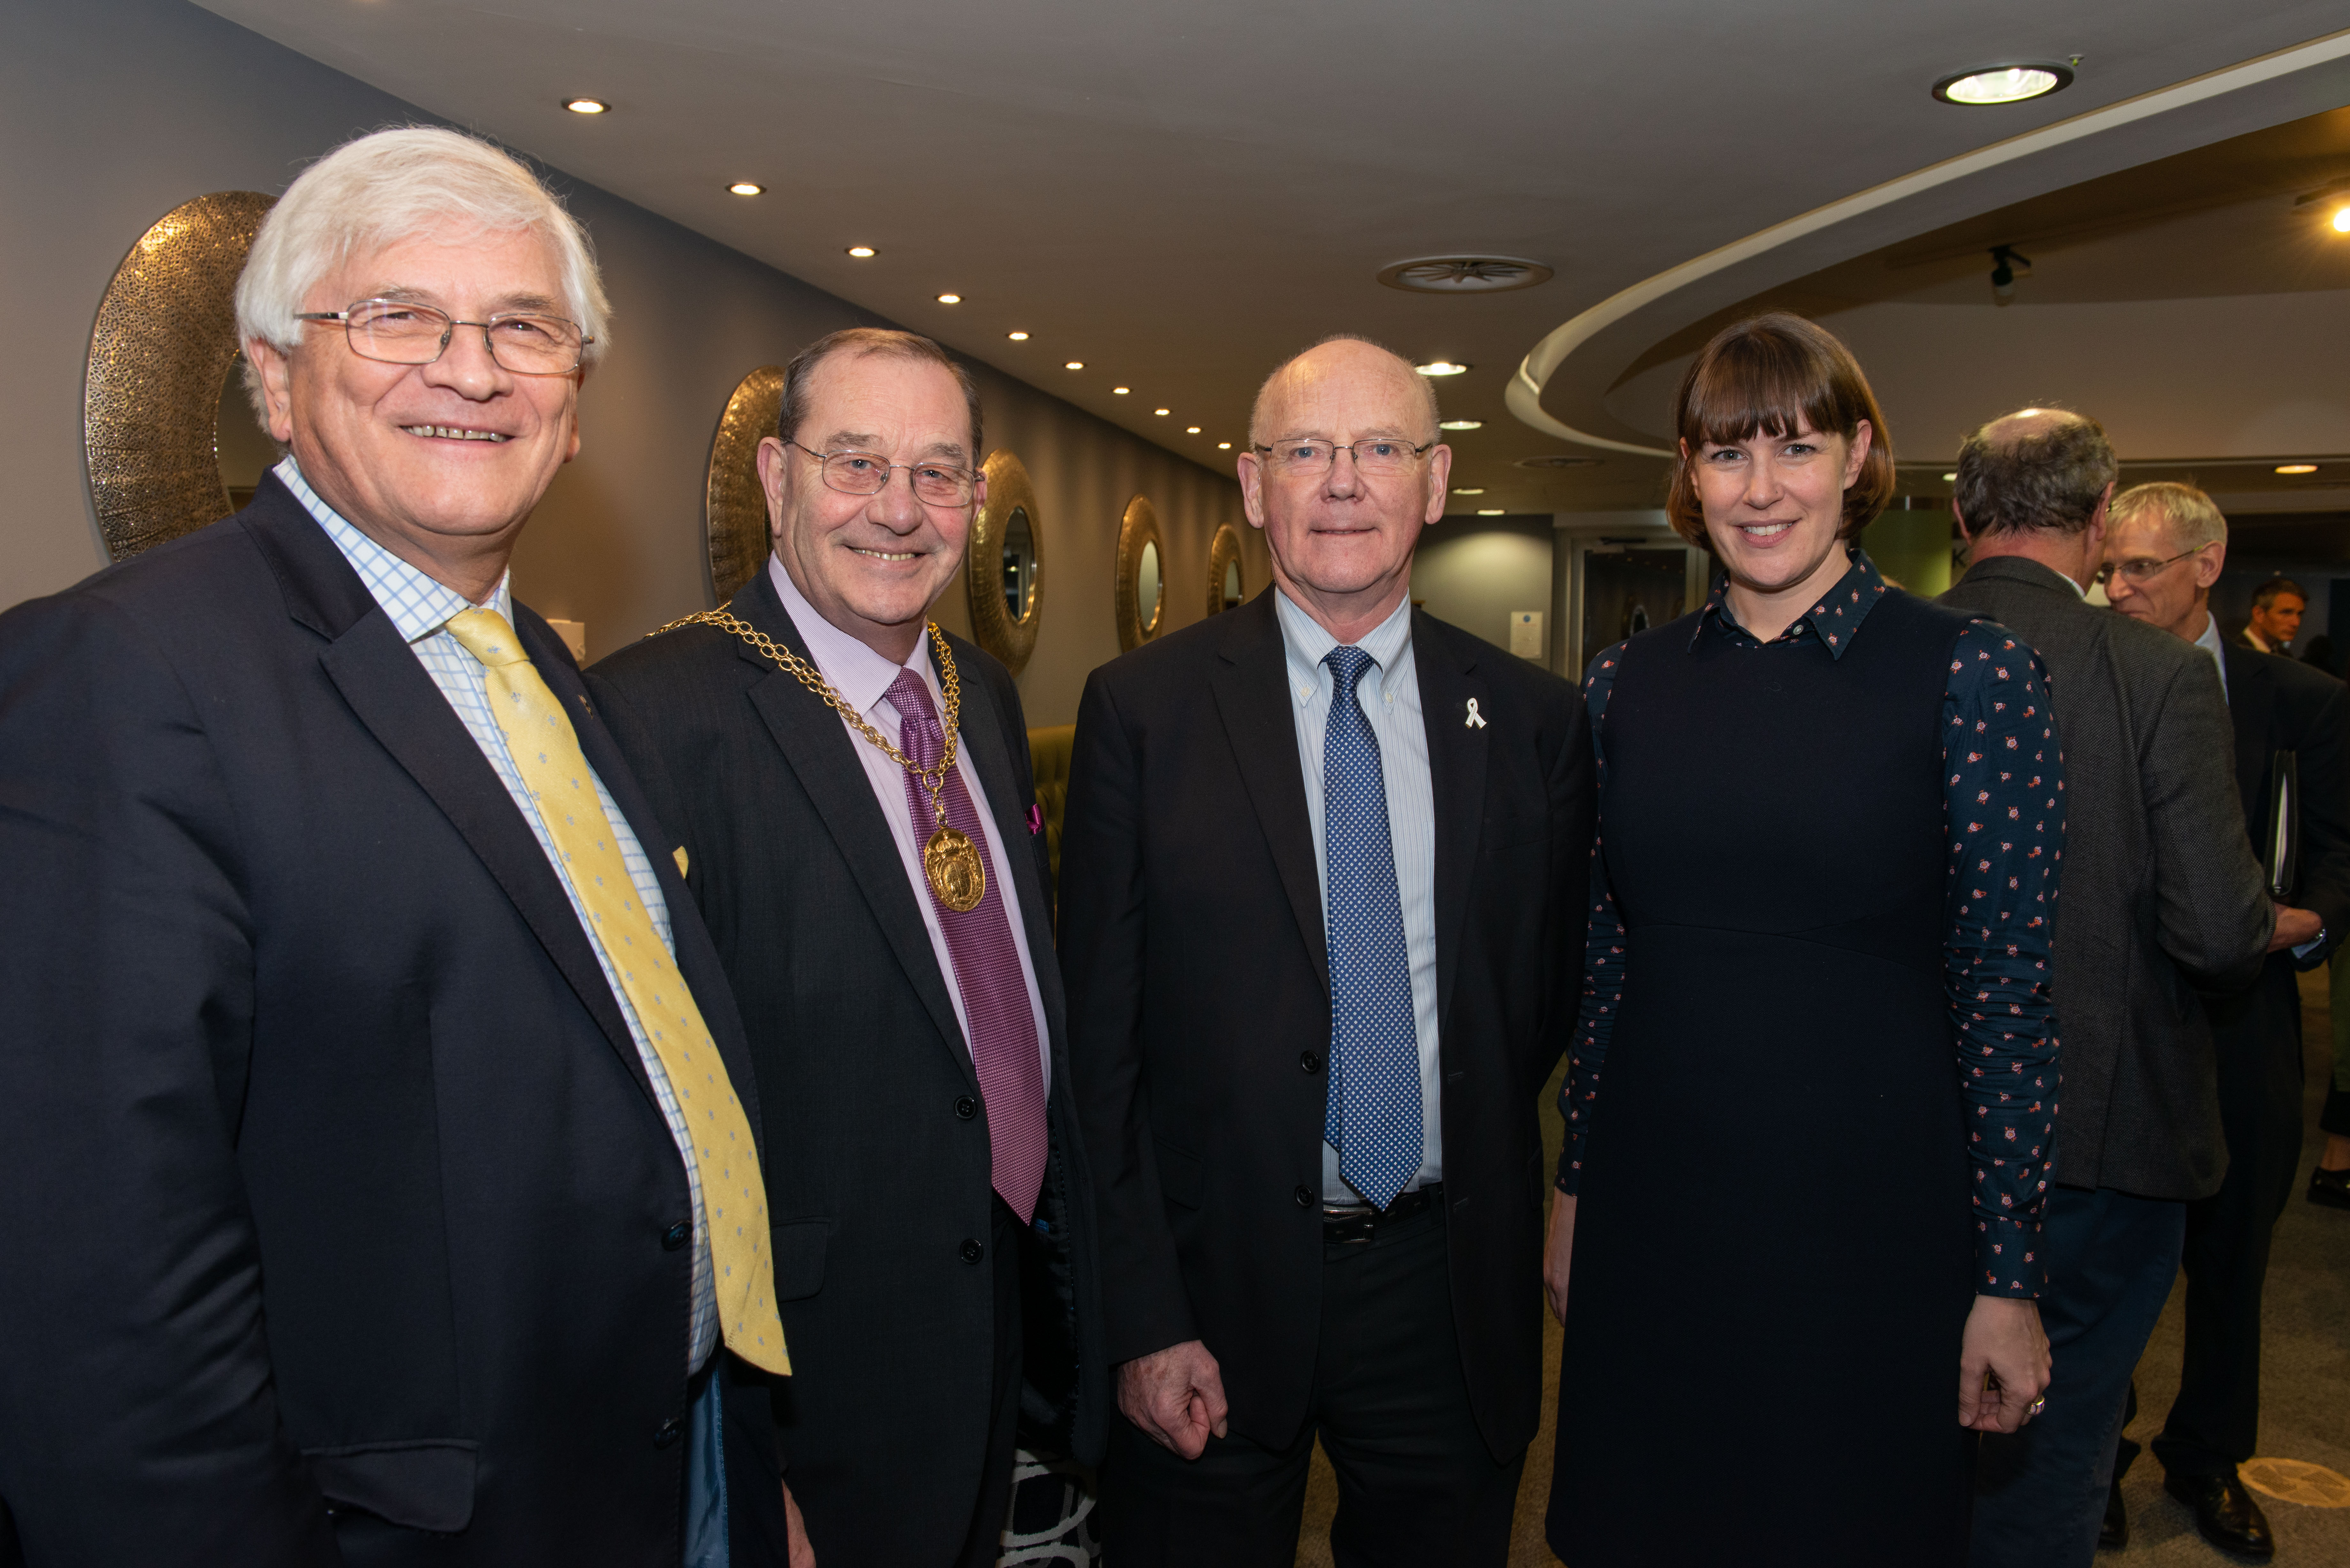 From left; Peter Martin, Mayor of Guildford, Councillor Mike Parsons, Surrey Police & Crime Commissioner, David Munro & Clare Masters from Wates